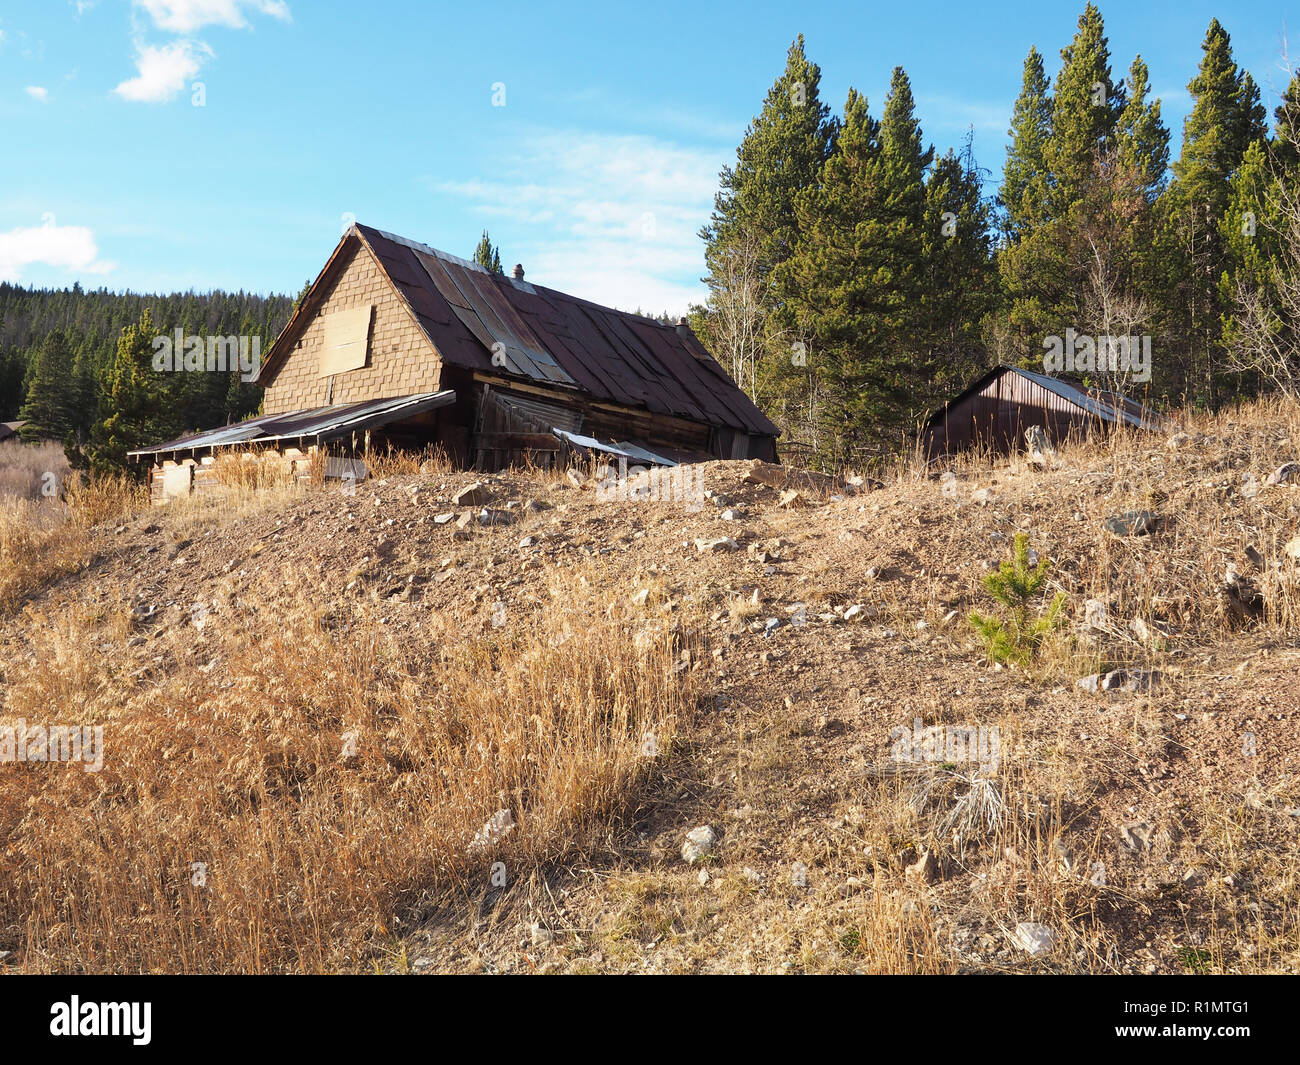 An old building for a mine in the hills near Breckenridge Colorado - Stock Image